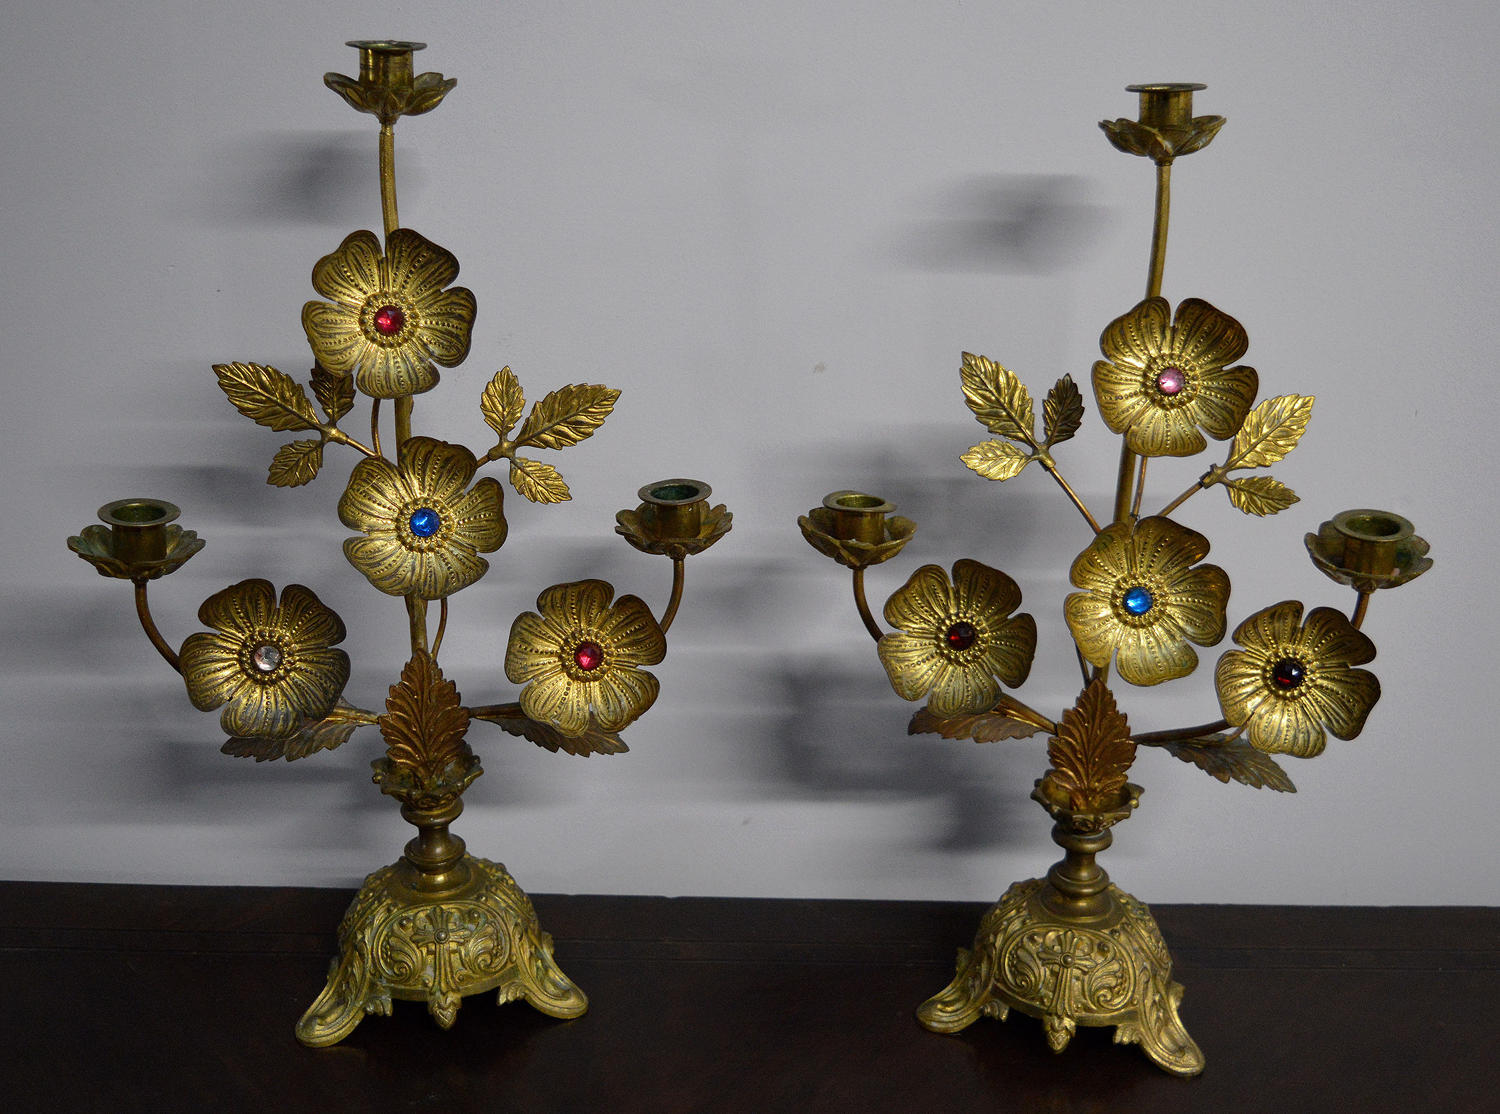 Pair of 19thC Ecclesiastical Gilt brass Candlesticks